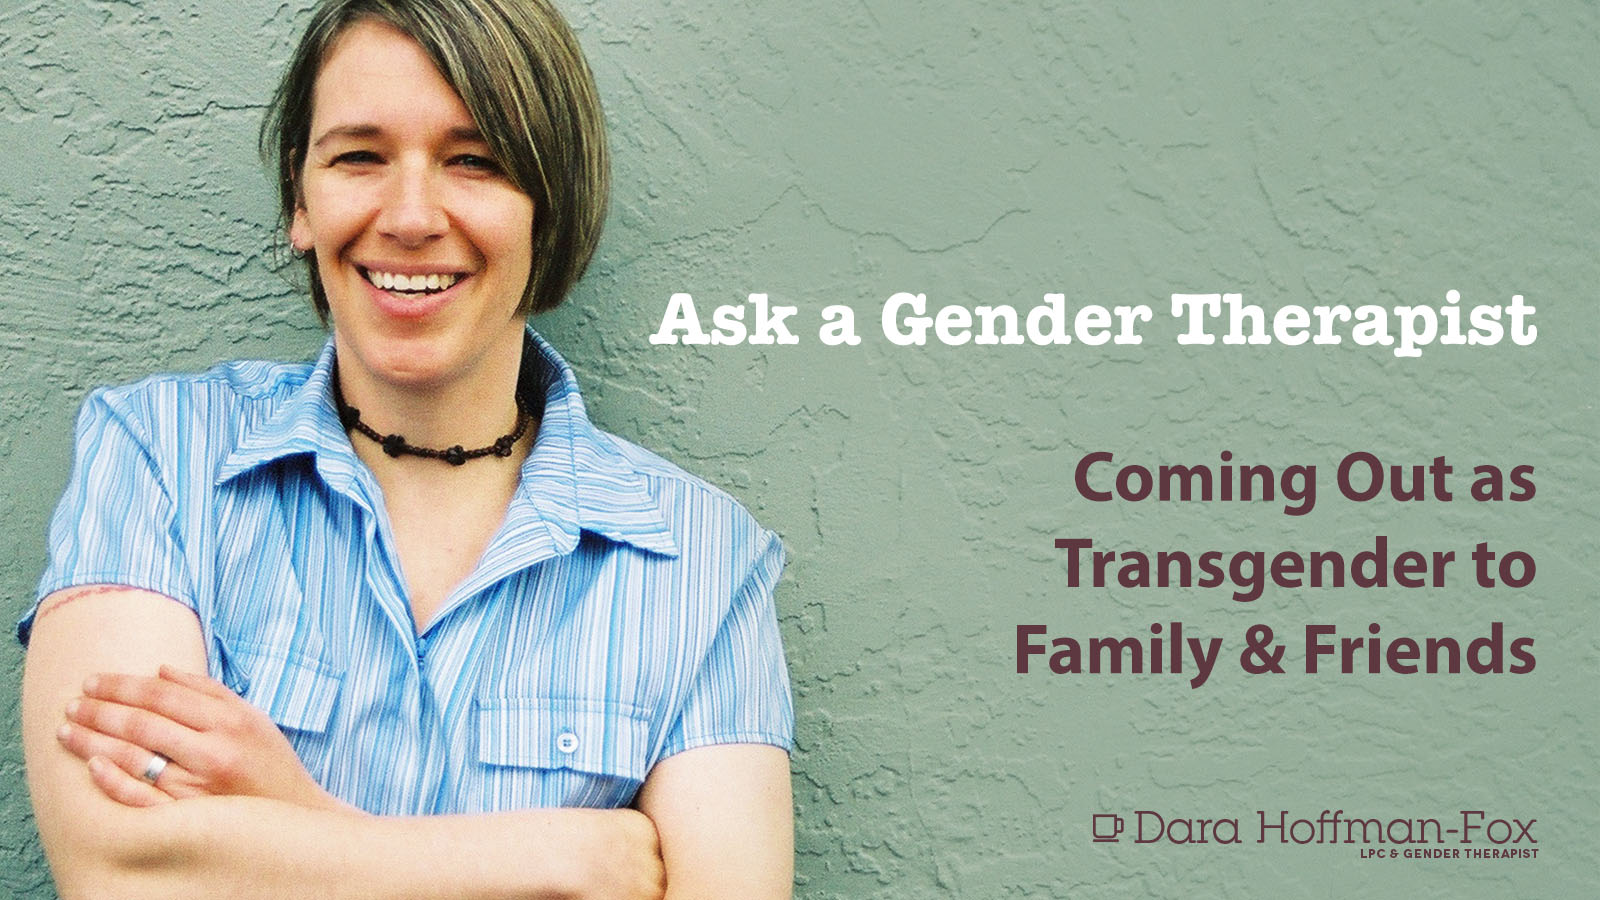 Gender Therapist